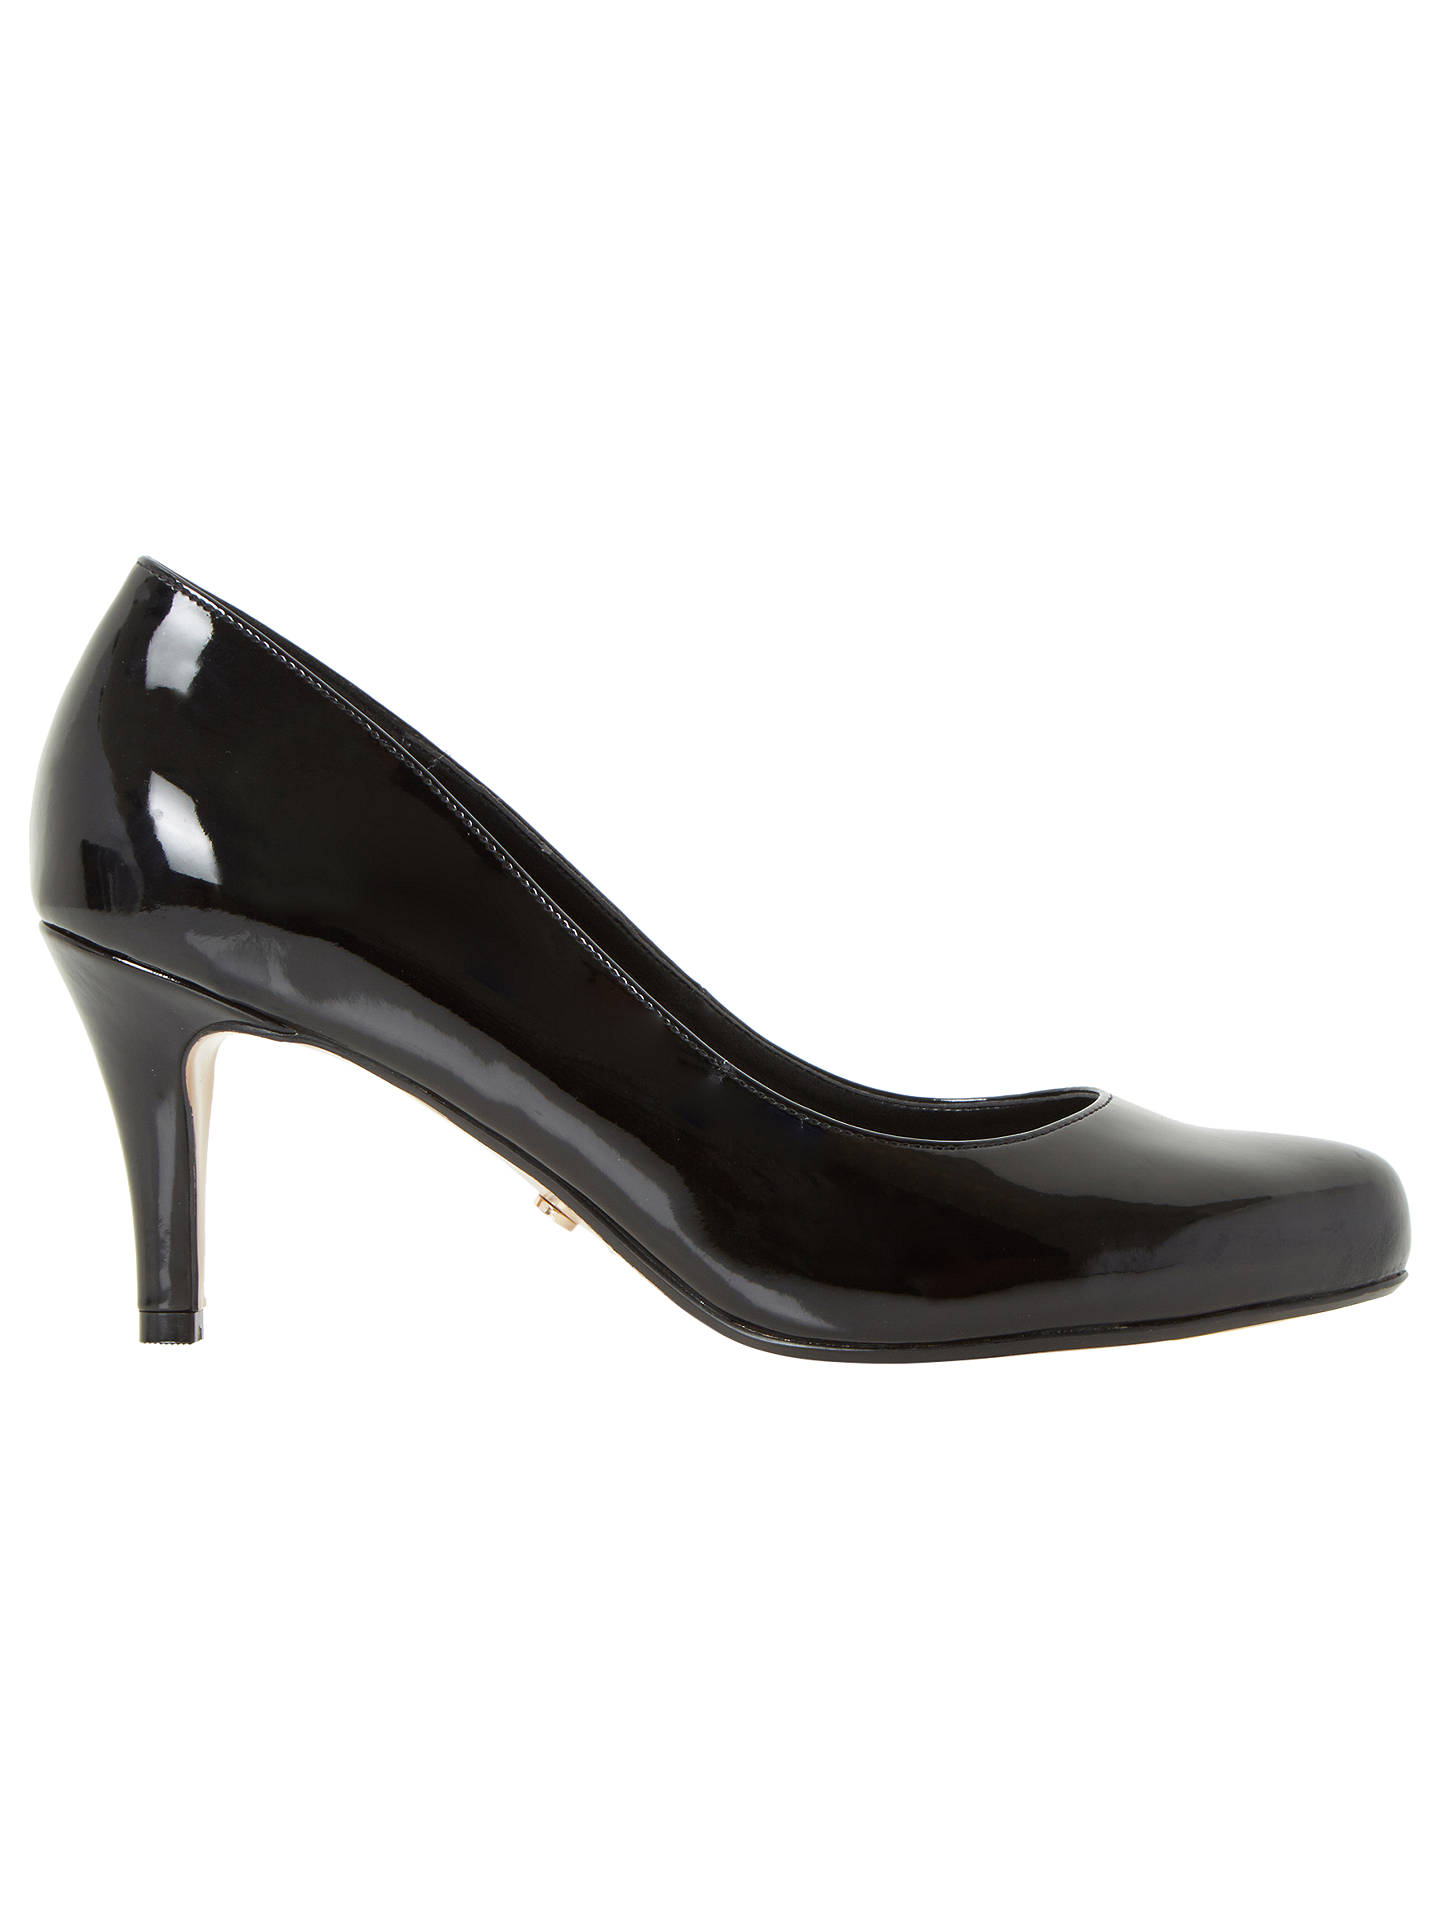 0bcb9f5f8ef00 Buy Dune Wide Fit Amelia Stiletto Heeled Court Shoes, Black Patent, 3  Online at ...